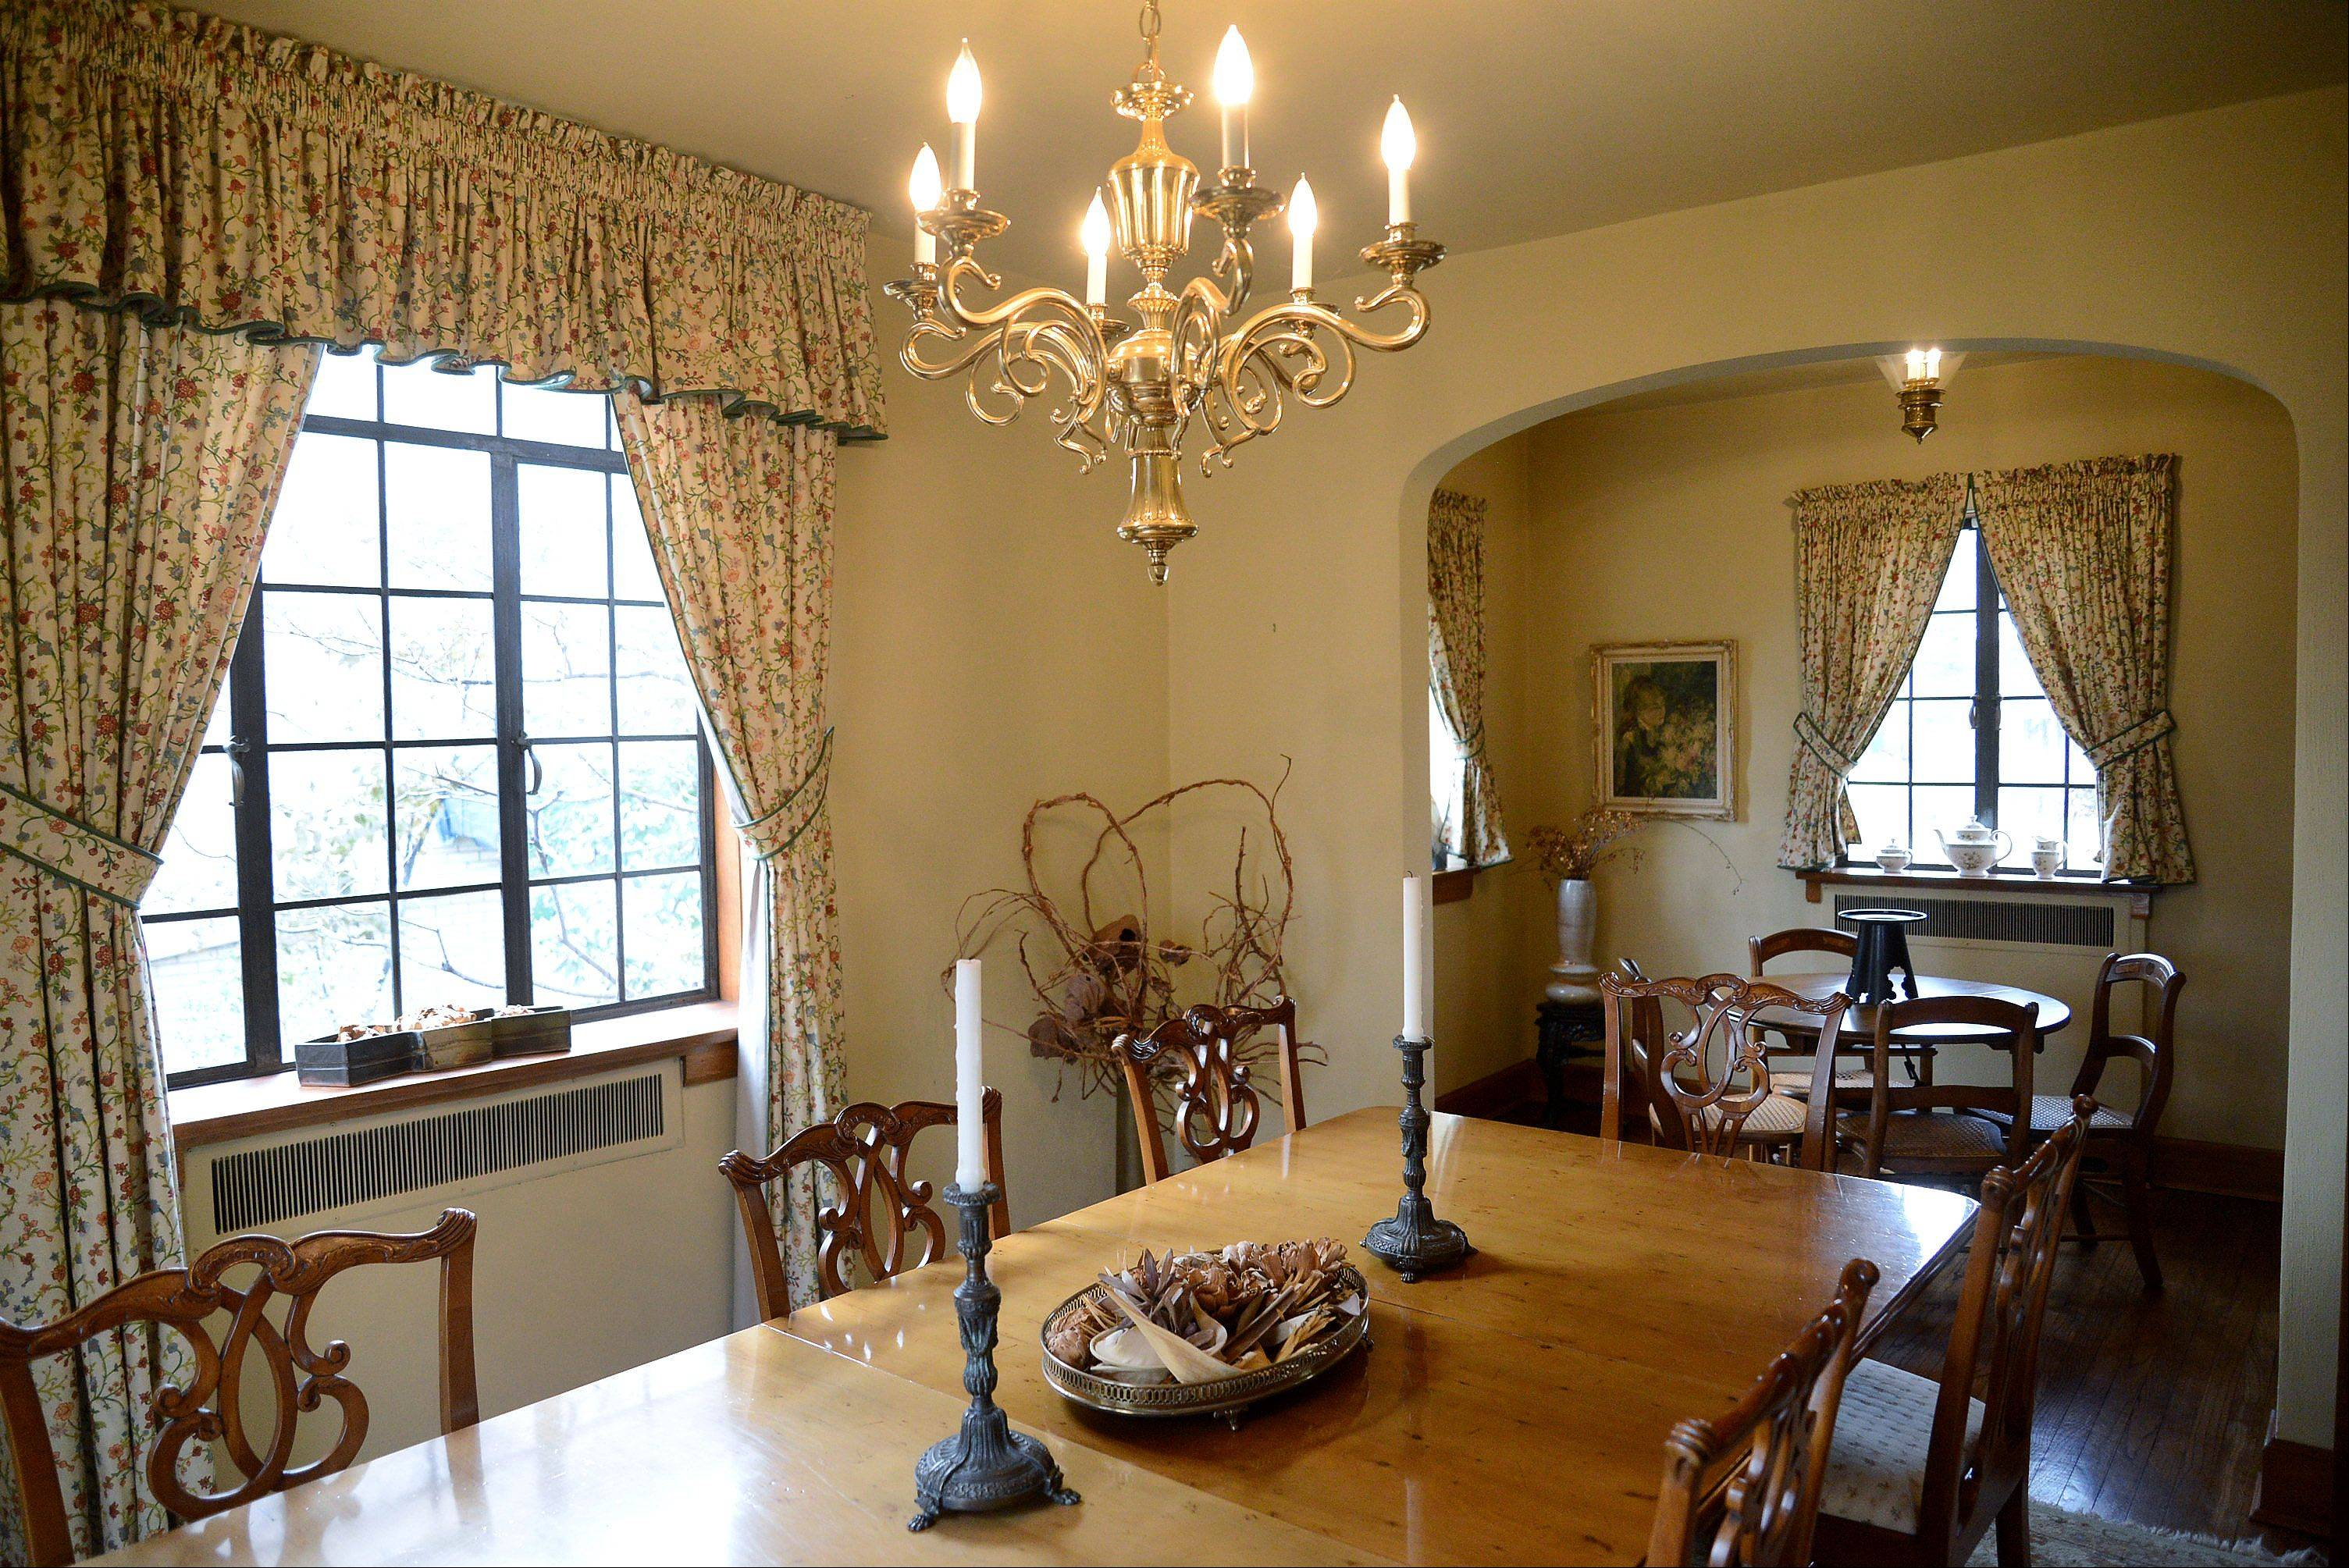 The Moats home, a 1928 Cotswold cottage, that will be featured on this year's Mount Prospect Holiday Housewalk. Dining room.